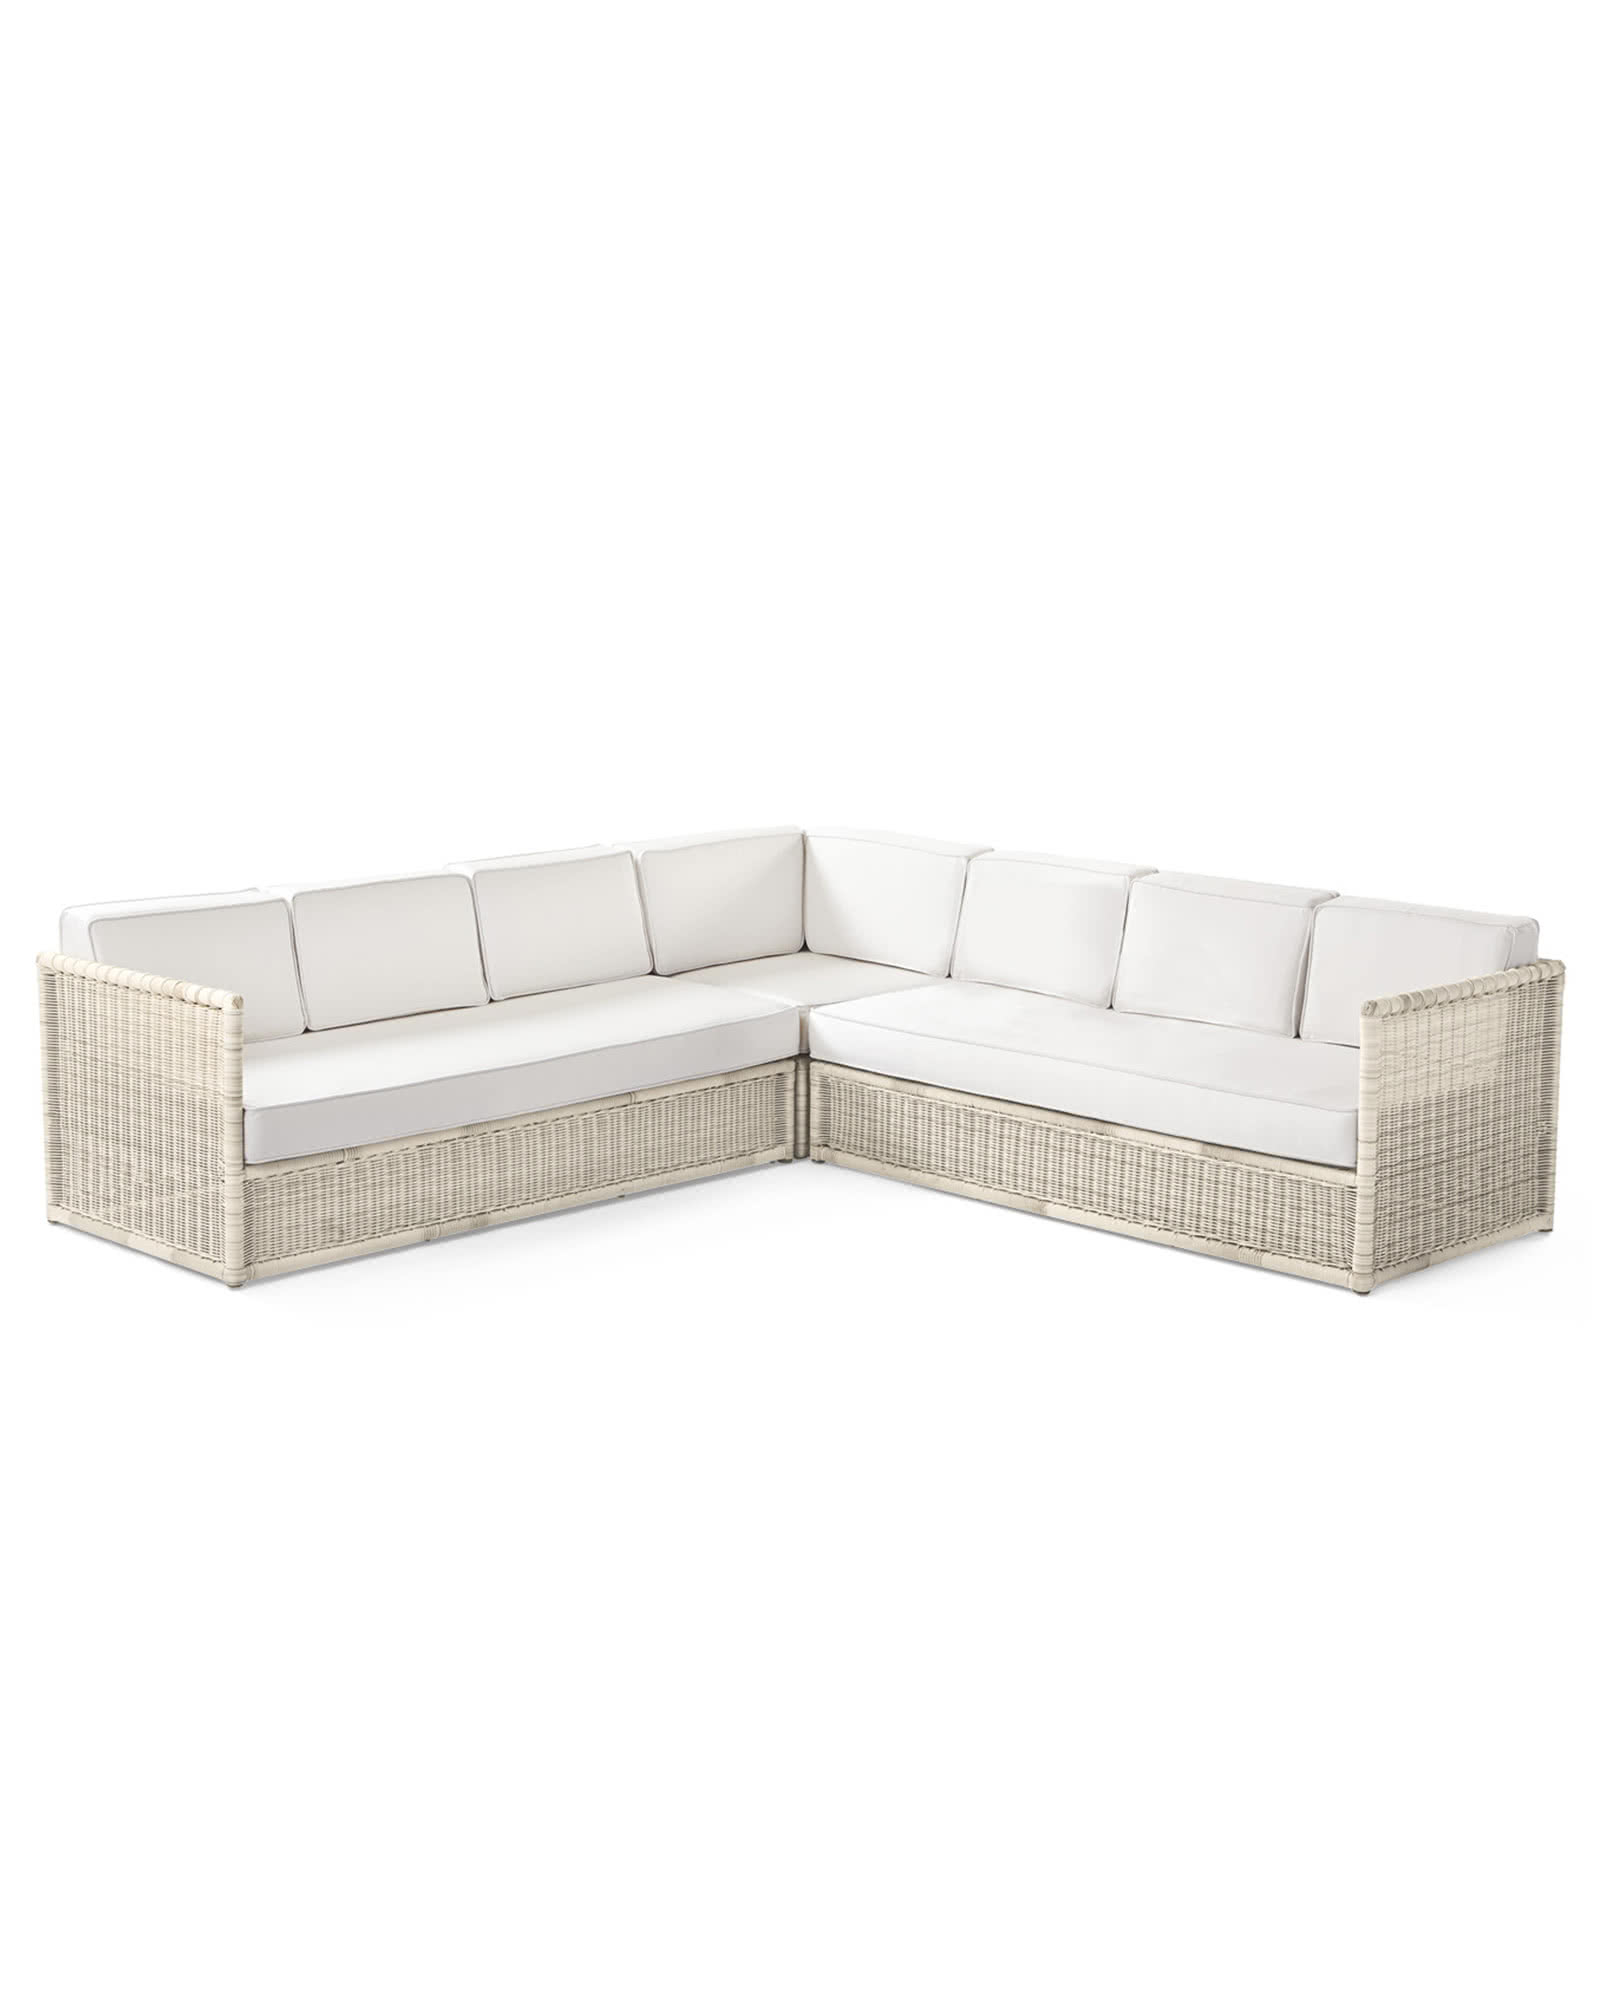 Pacifica Corner Sectional - Driftwood,